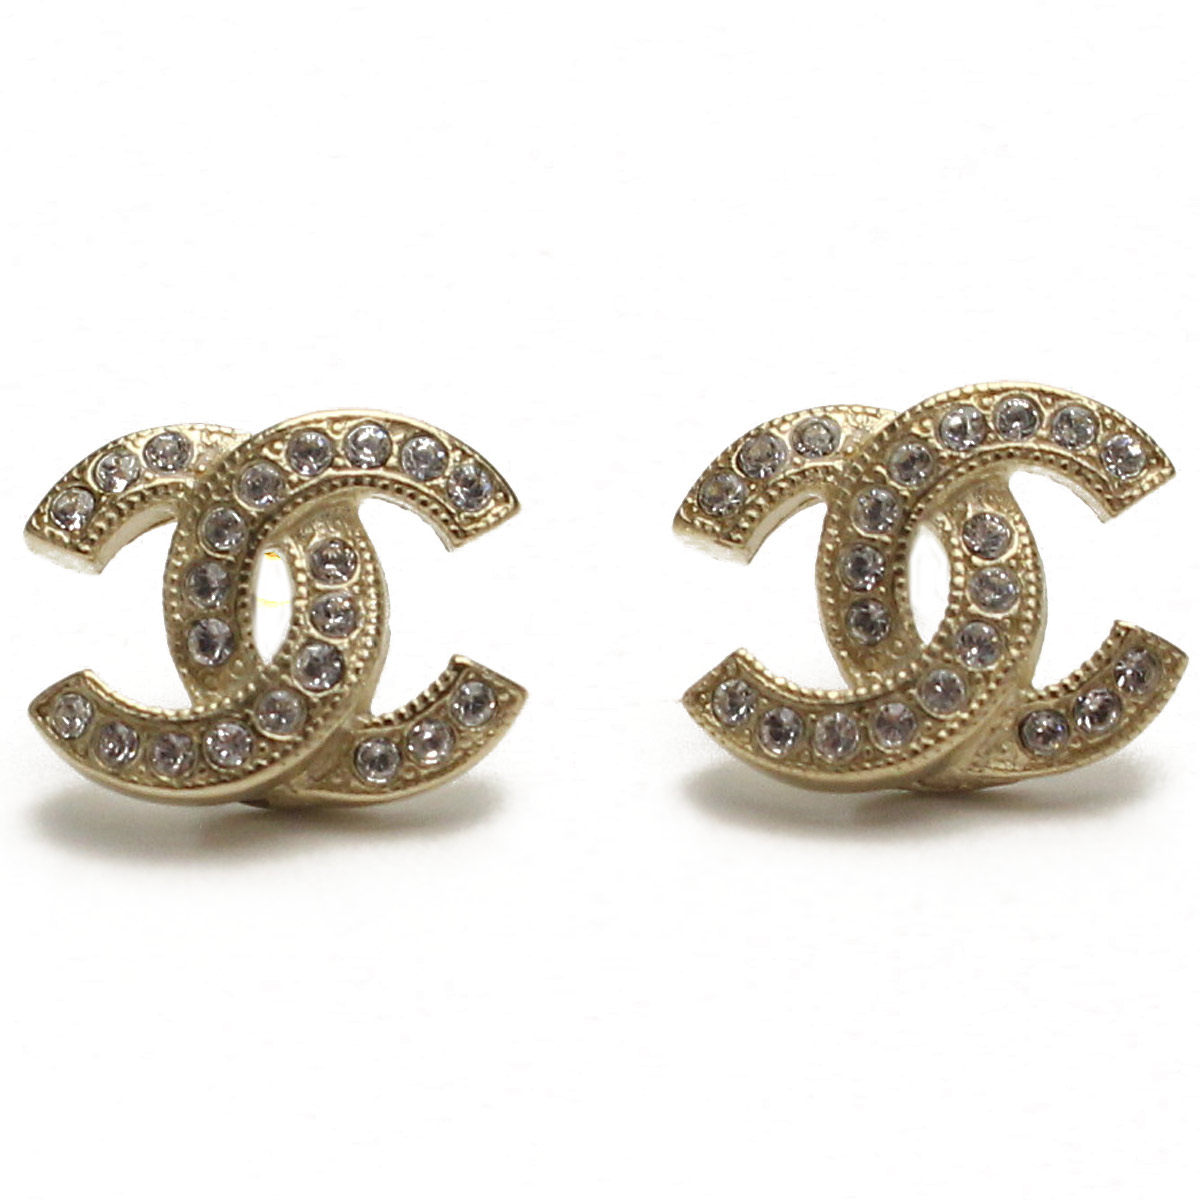 Hit The Total Brand Whole Chanel Earrings A88429 Gold And Zirconia Clear Series Taxfree Send By Ems Authentic A New Item Rakuten